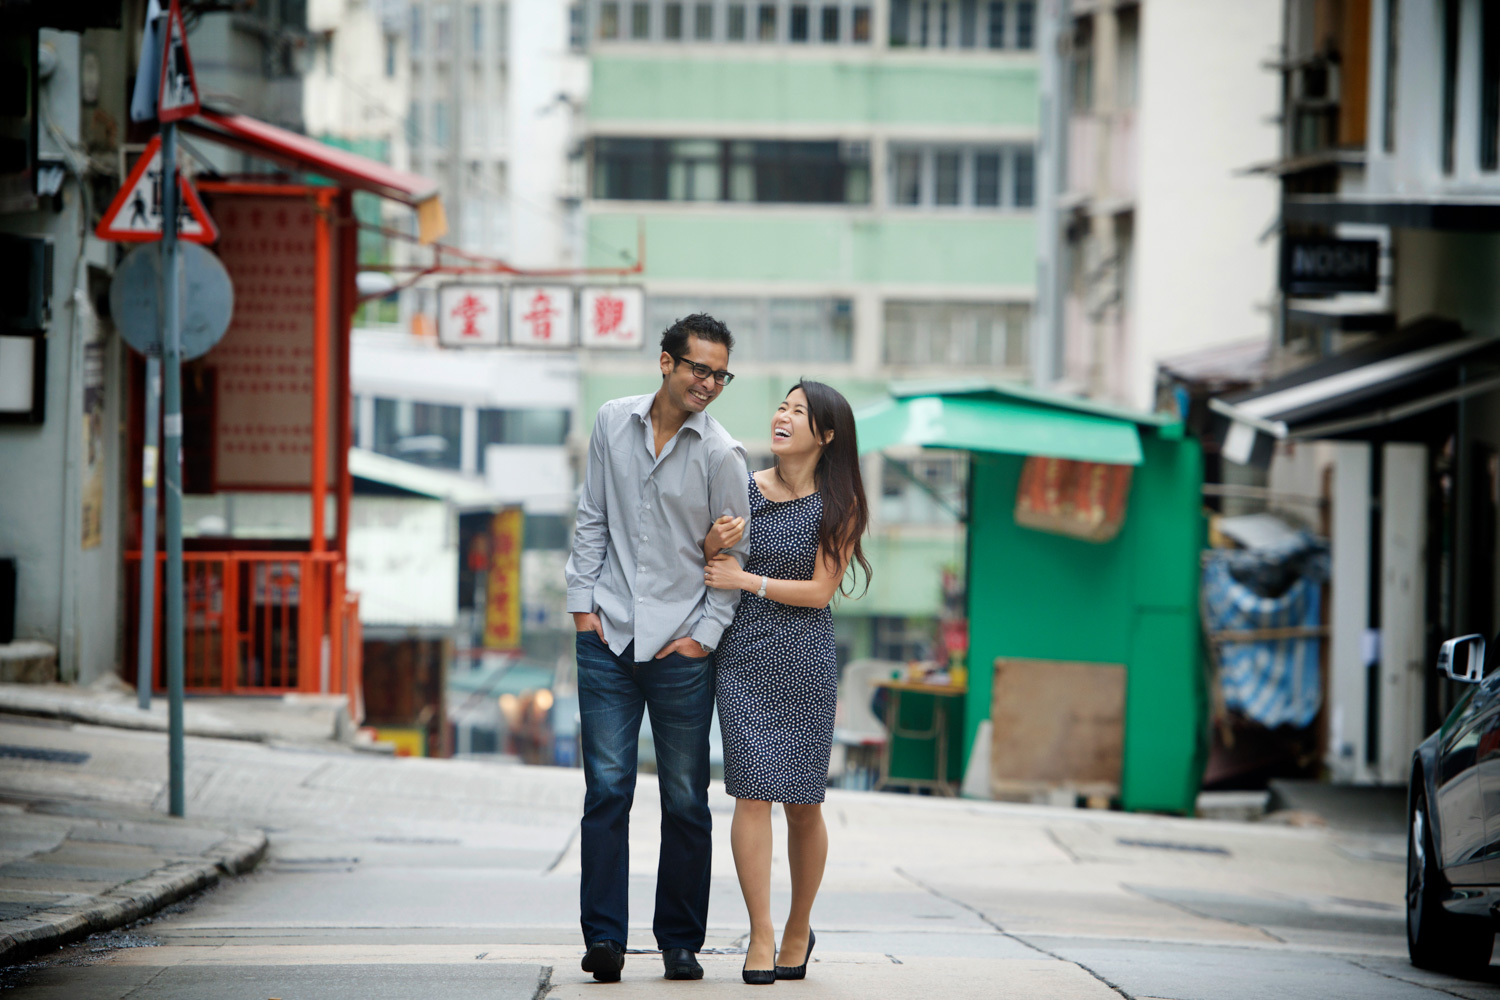 hong-kong-pre-wedding-engagement-photographer-couple-laughing-together-walking-down-street-wan-chai.jpg